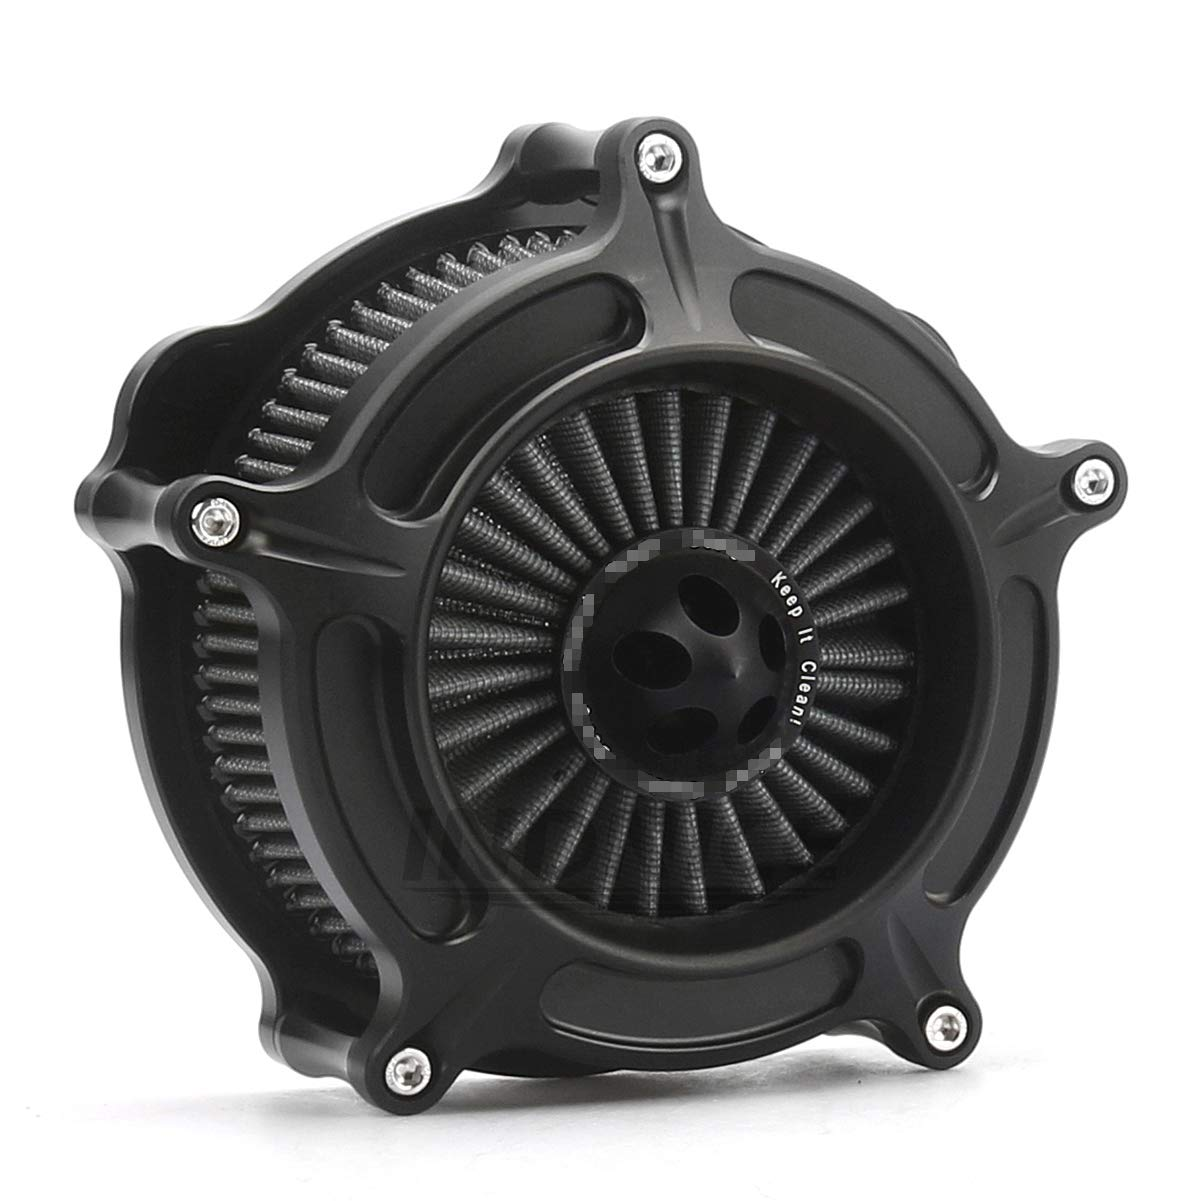 Turbine Spike Air Cleaner for harley sportster 1200 1991-2019 air filters sportster iron 883 by HAPPY-MOTOR